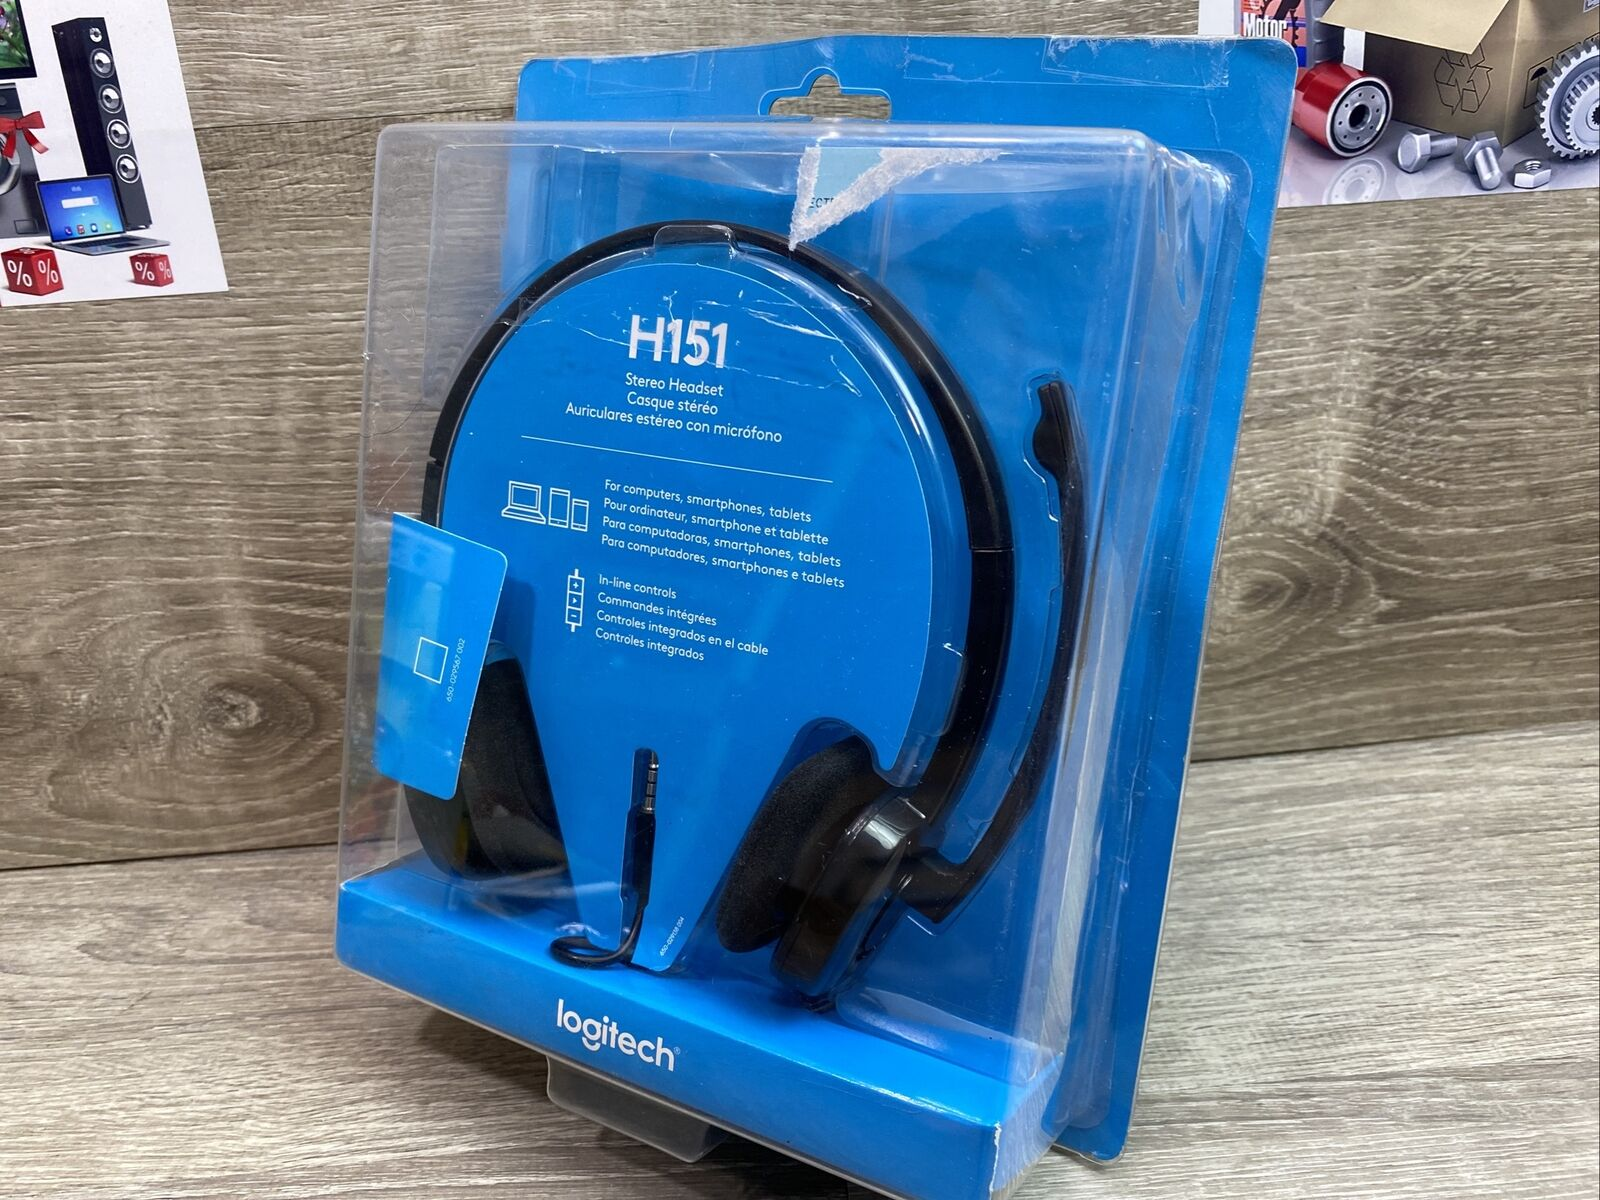 Logitech 3.5 mm Analog Stereo Headset H151 with Boom Microphone Black